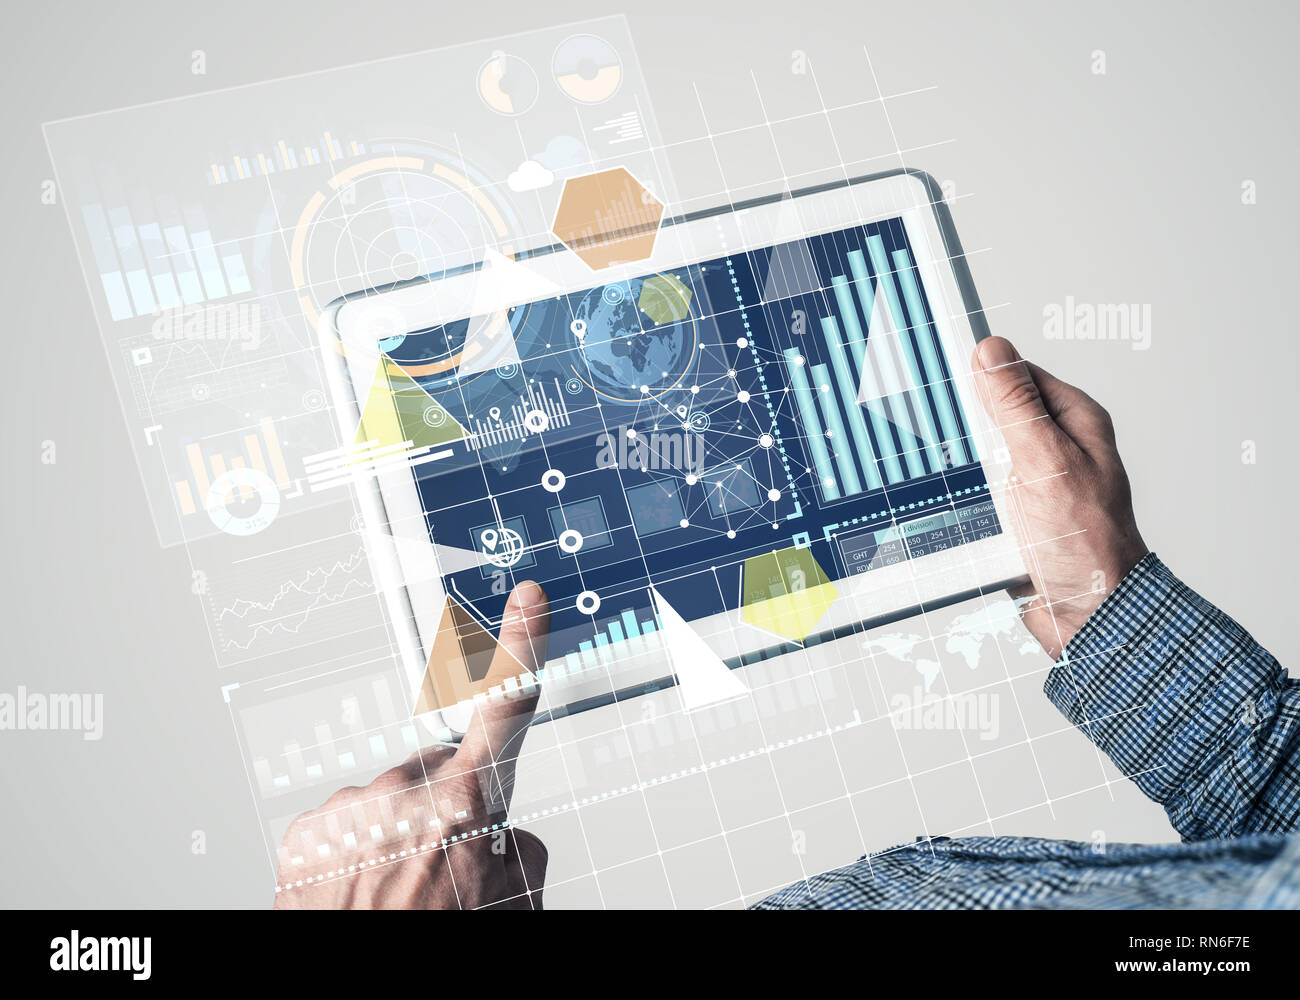 Concept of global connection and interaction interface on notebook display - Stock Image